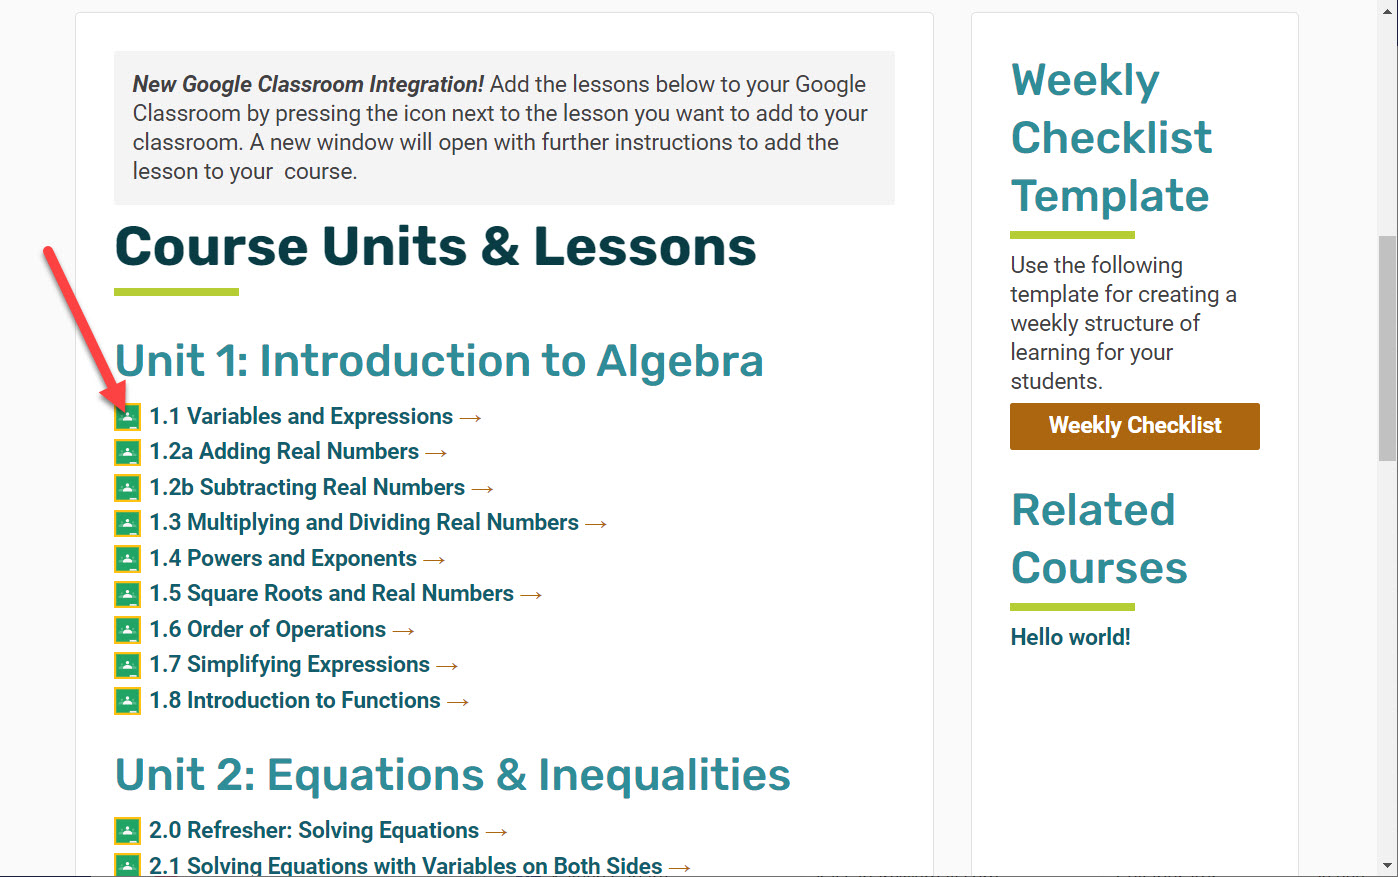 The Course Units and Lessons page shows a Google Classroom link located to the left of each lesson. An arrow points to the first lesson 1.1 Variables and Expressions.